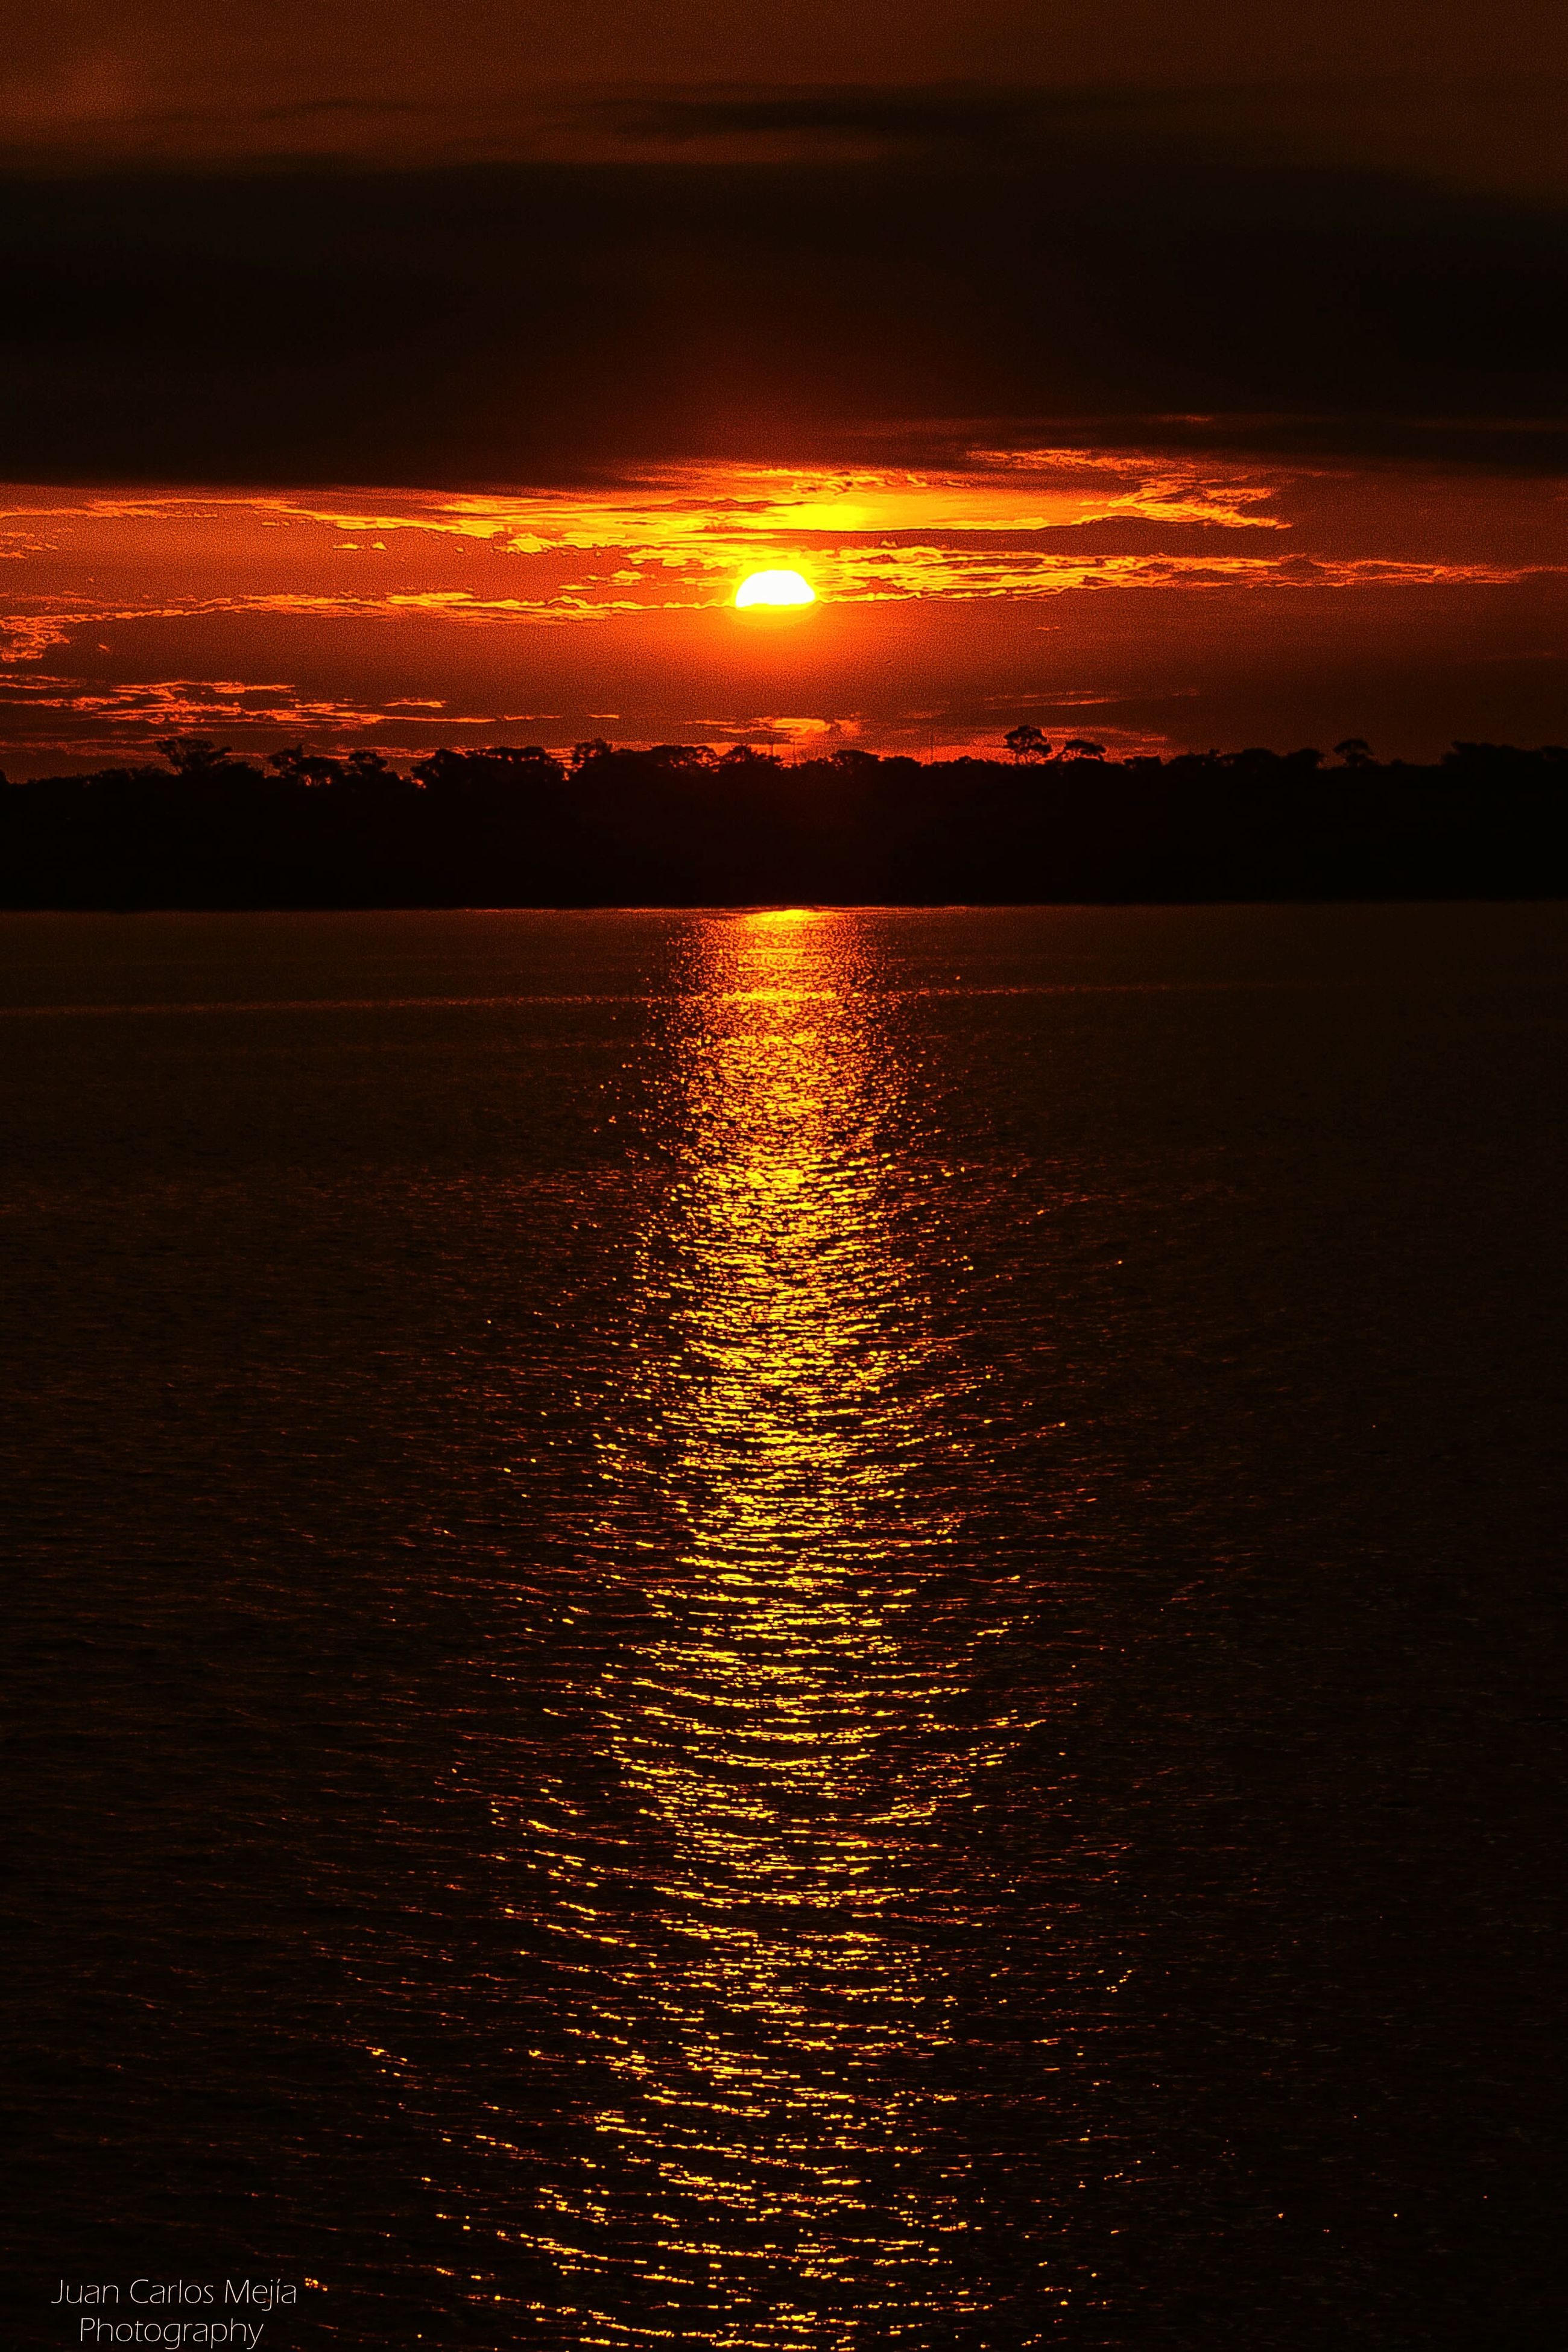 sunset, water, tranquil scene, scenics, tranquility, beauty in nature, sea, sky, sun, orange color, rippled, reflection, silhouette, nature, idyllic, horizon over water, waterfront, cloud - sky, sunlight, outdoors